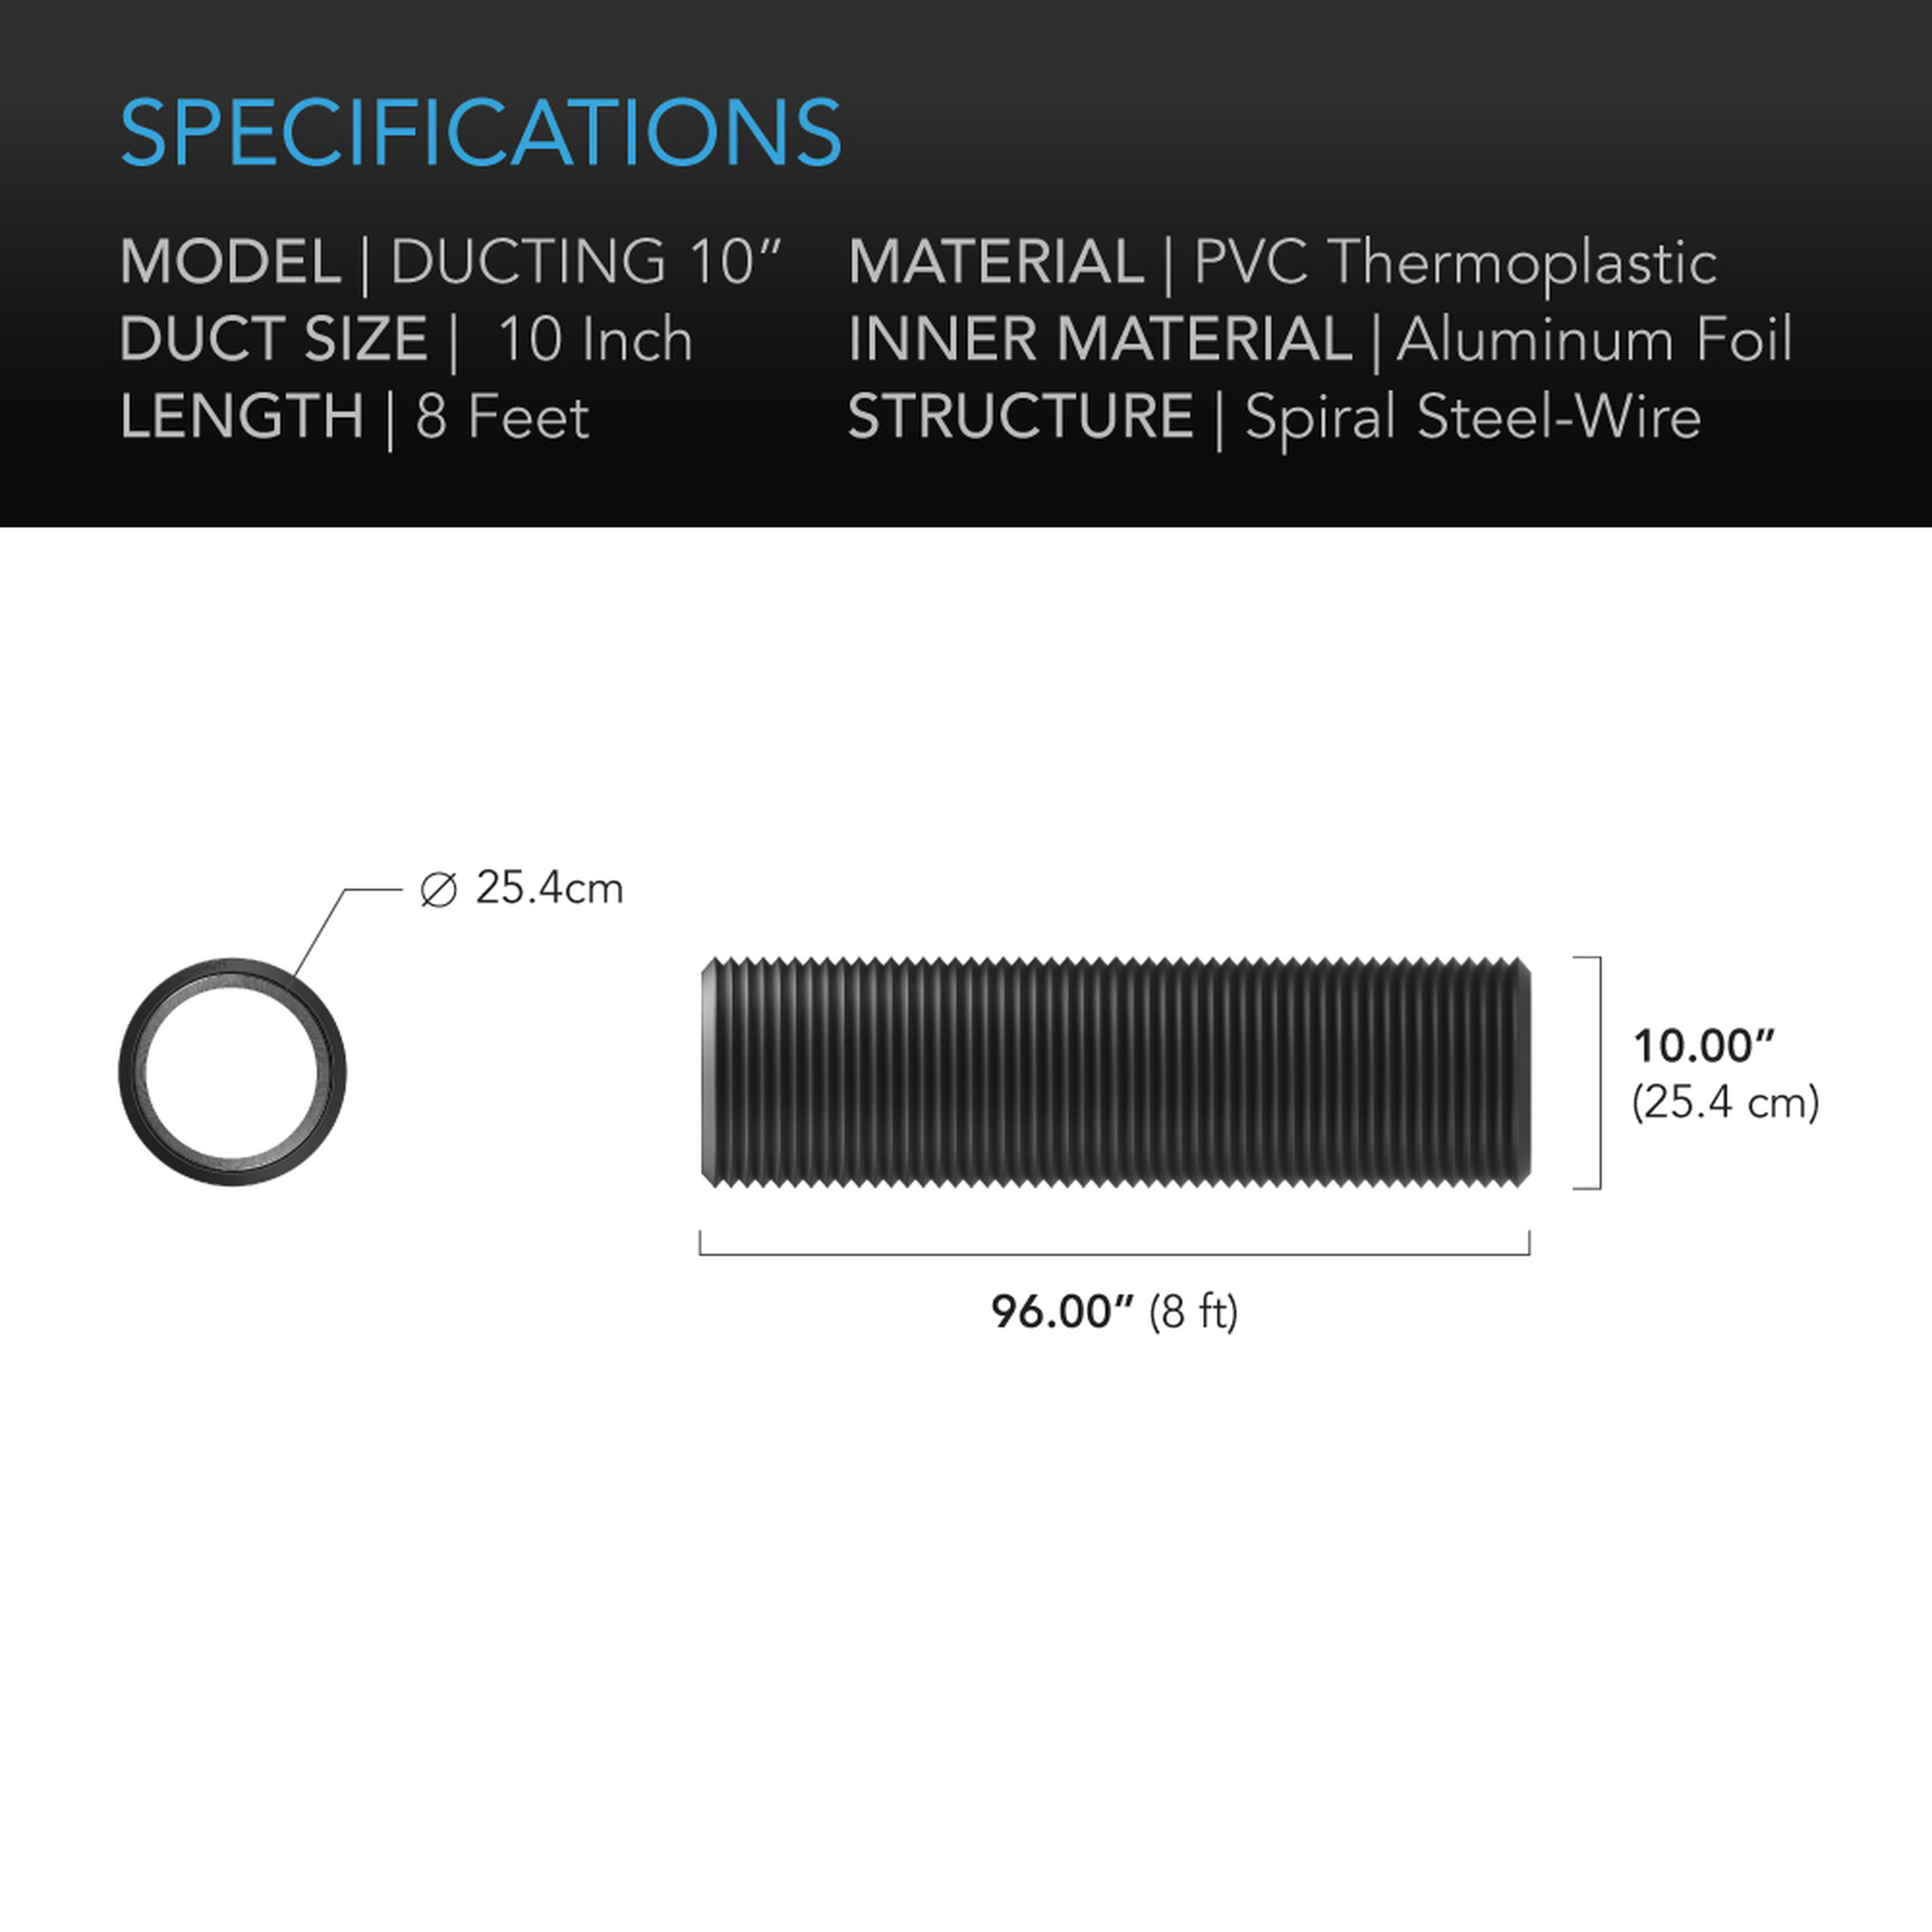 Duct tube 10 8' Specifications